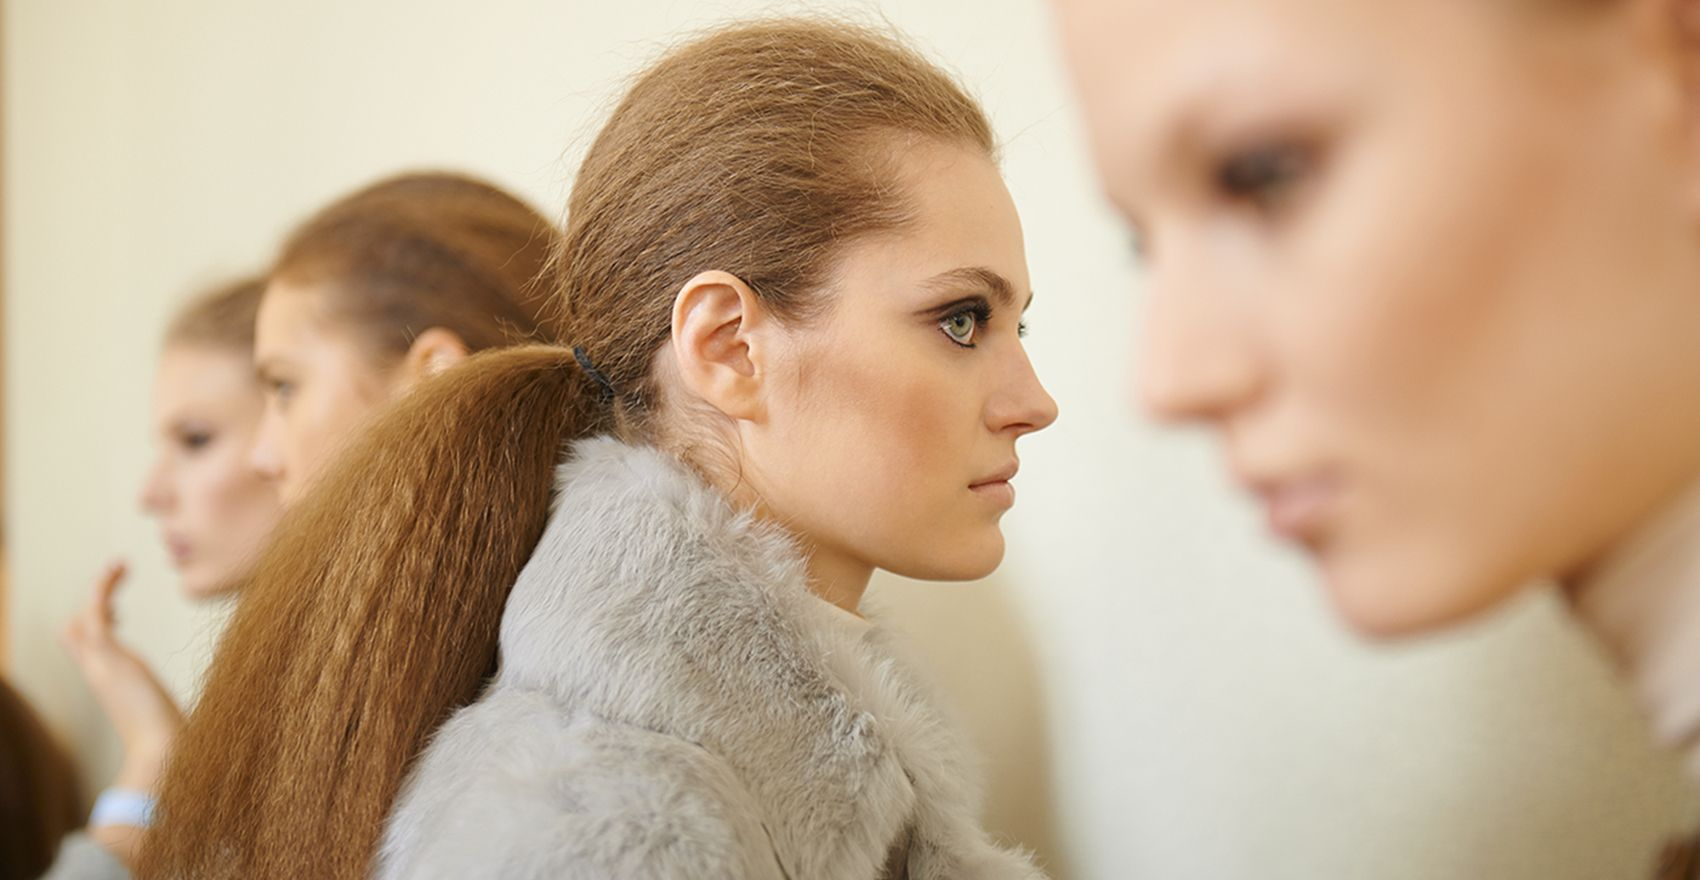 Backstage Vanessa Seward Fall-Winter 2016/17 collection finished 70's look | René Furterer